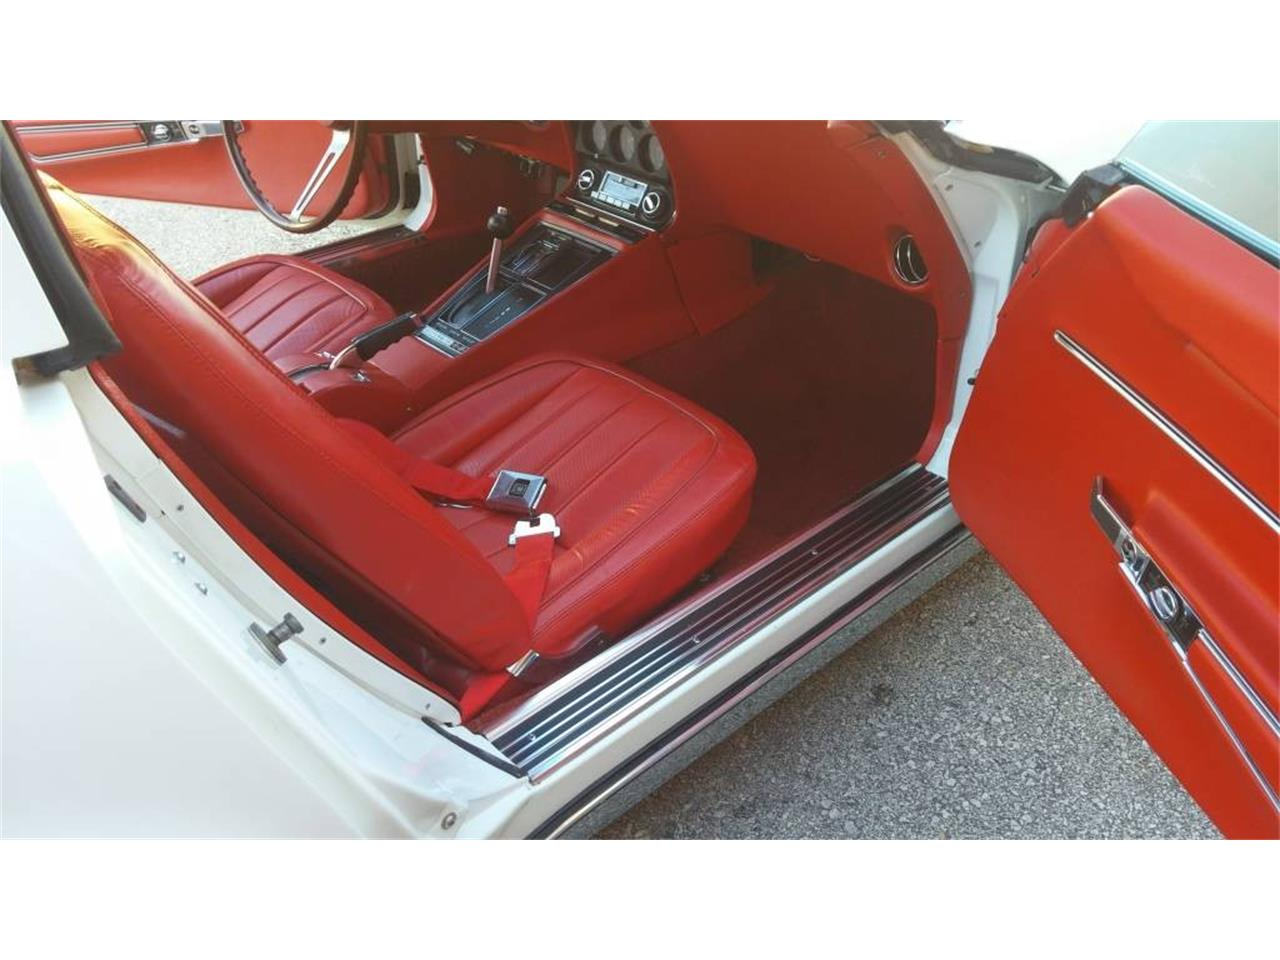 Large Picture of 1968 Corvette located in N. Kansas City Missouri Auction Vehicle Offered by Vintage Vettes, LLC - MO22